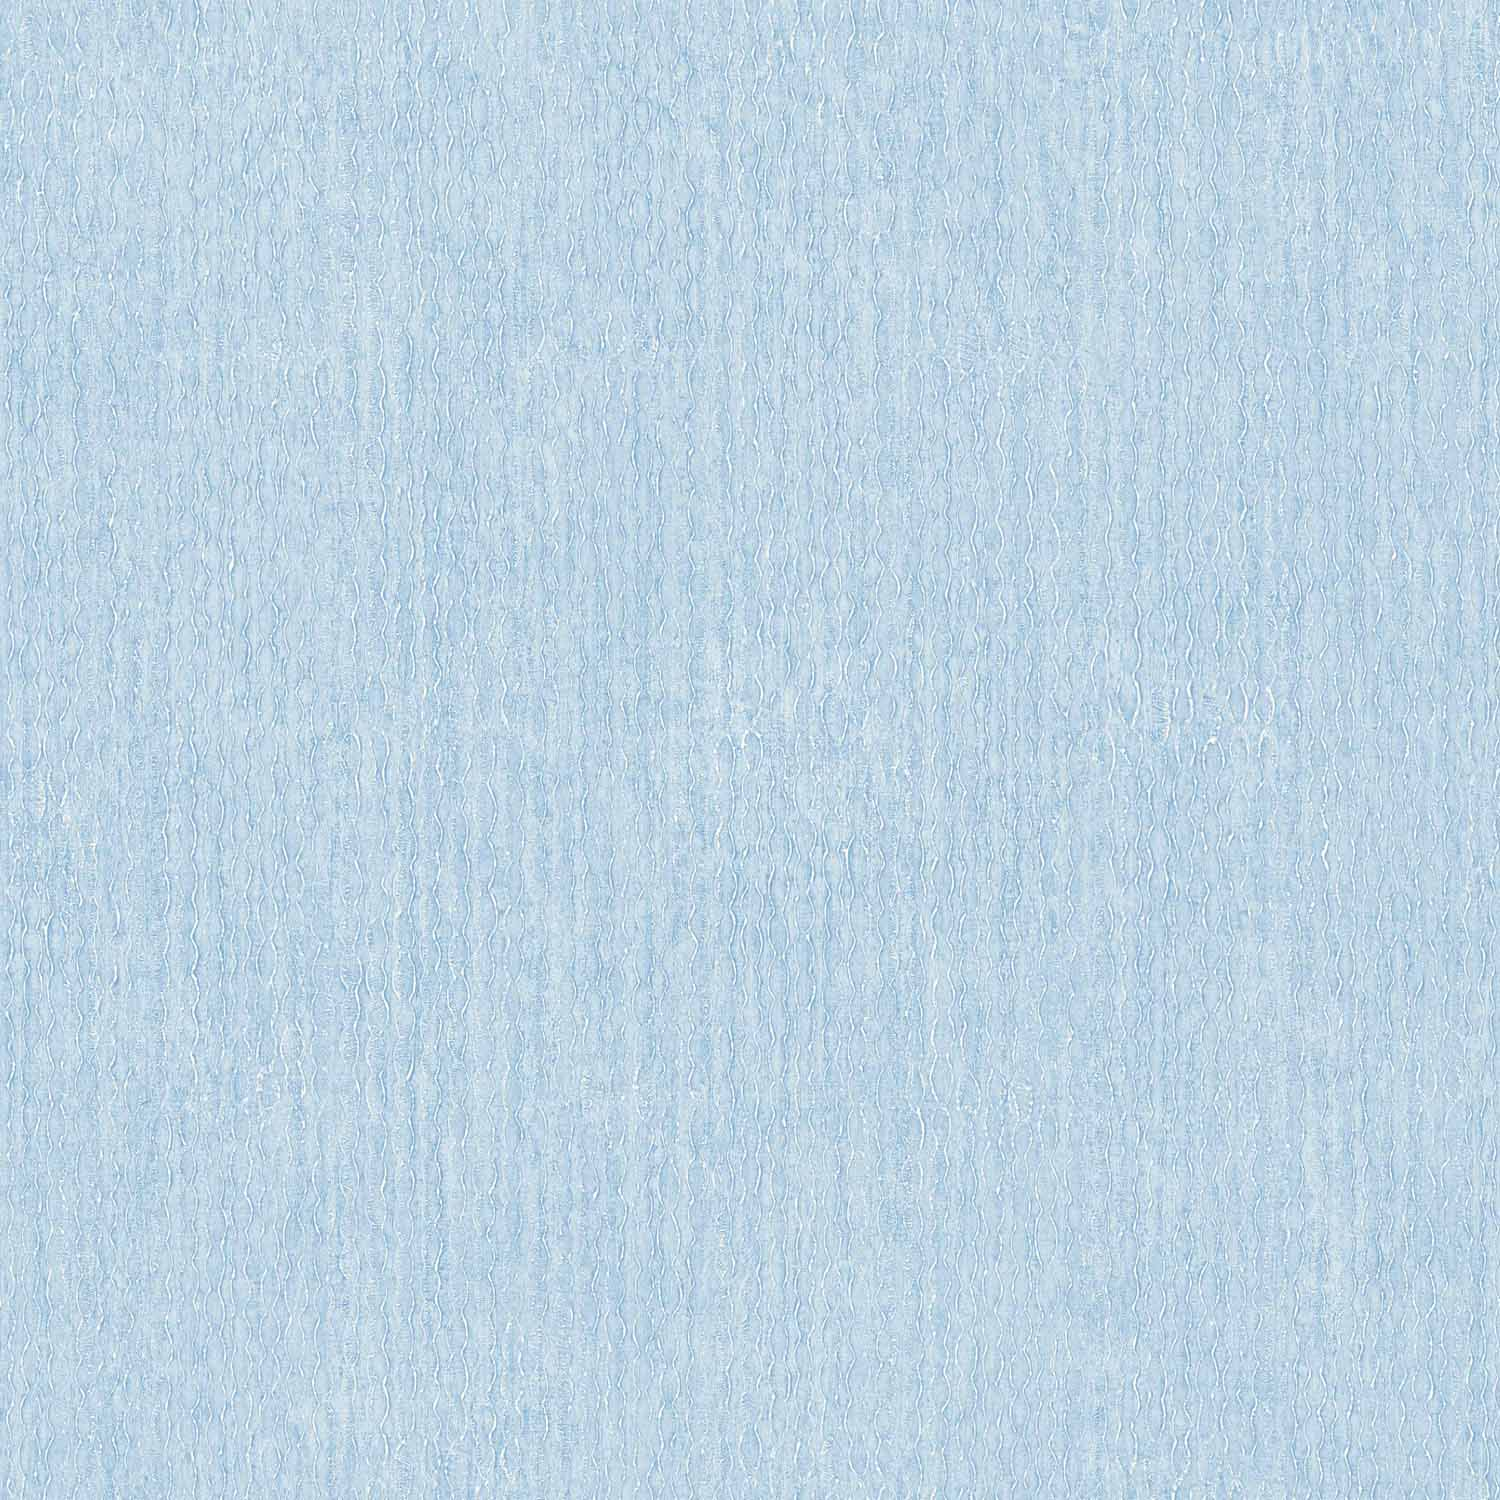 Picture of Aquarius Blue Waterways Faux Effects Wallpaper